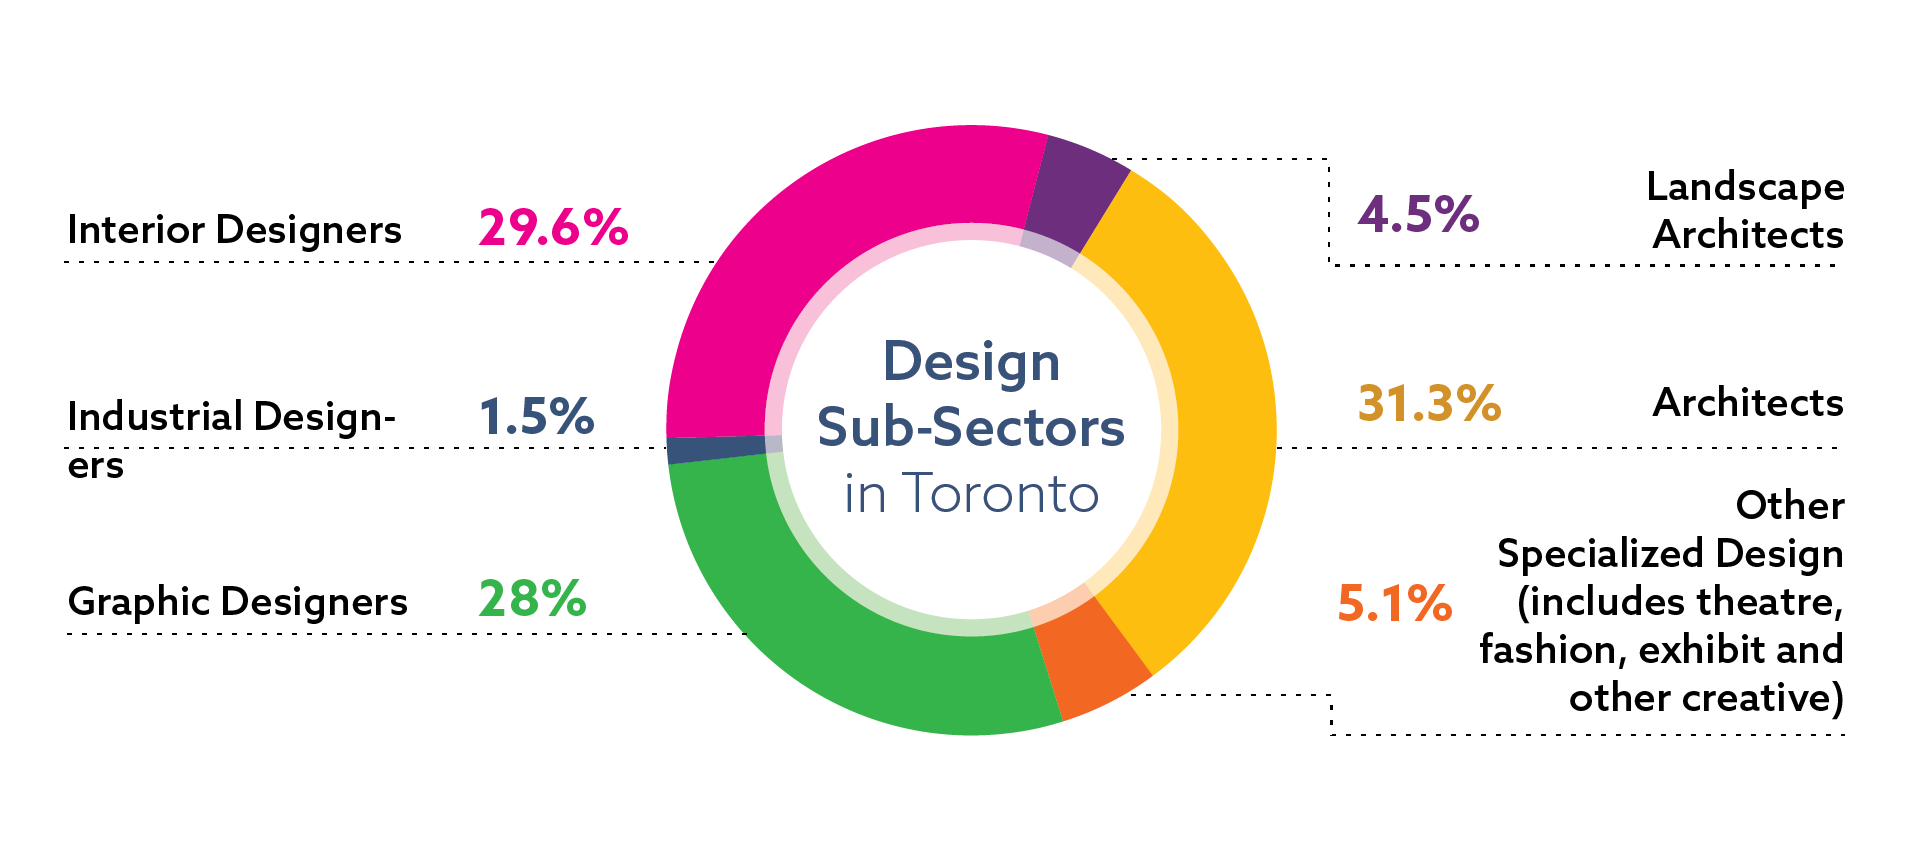 Distribution of jobs in the design sector in Toronto, by sub-sector: architects 31.3 percent of sector jobs; interior designer 29.6 percent of sector jobs; graphic designers 28 percent of sector jobs; other specialized areas (including theatre, fashion and exhibits) 5.1 percent of sector jobs; landscape architects 4.5 percent of sector jobs; industrial designers 1.5 percent of sector jobs